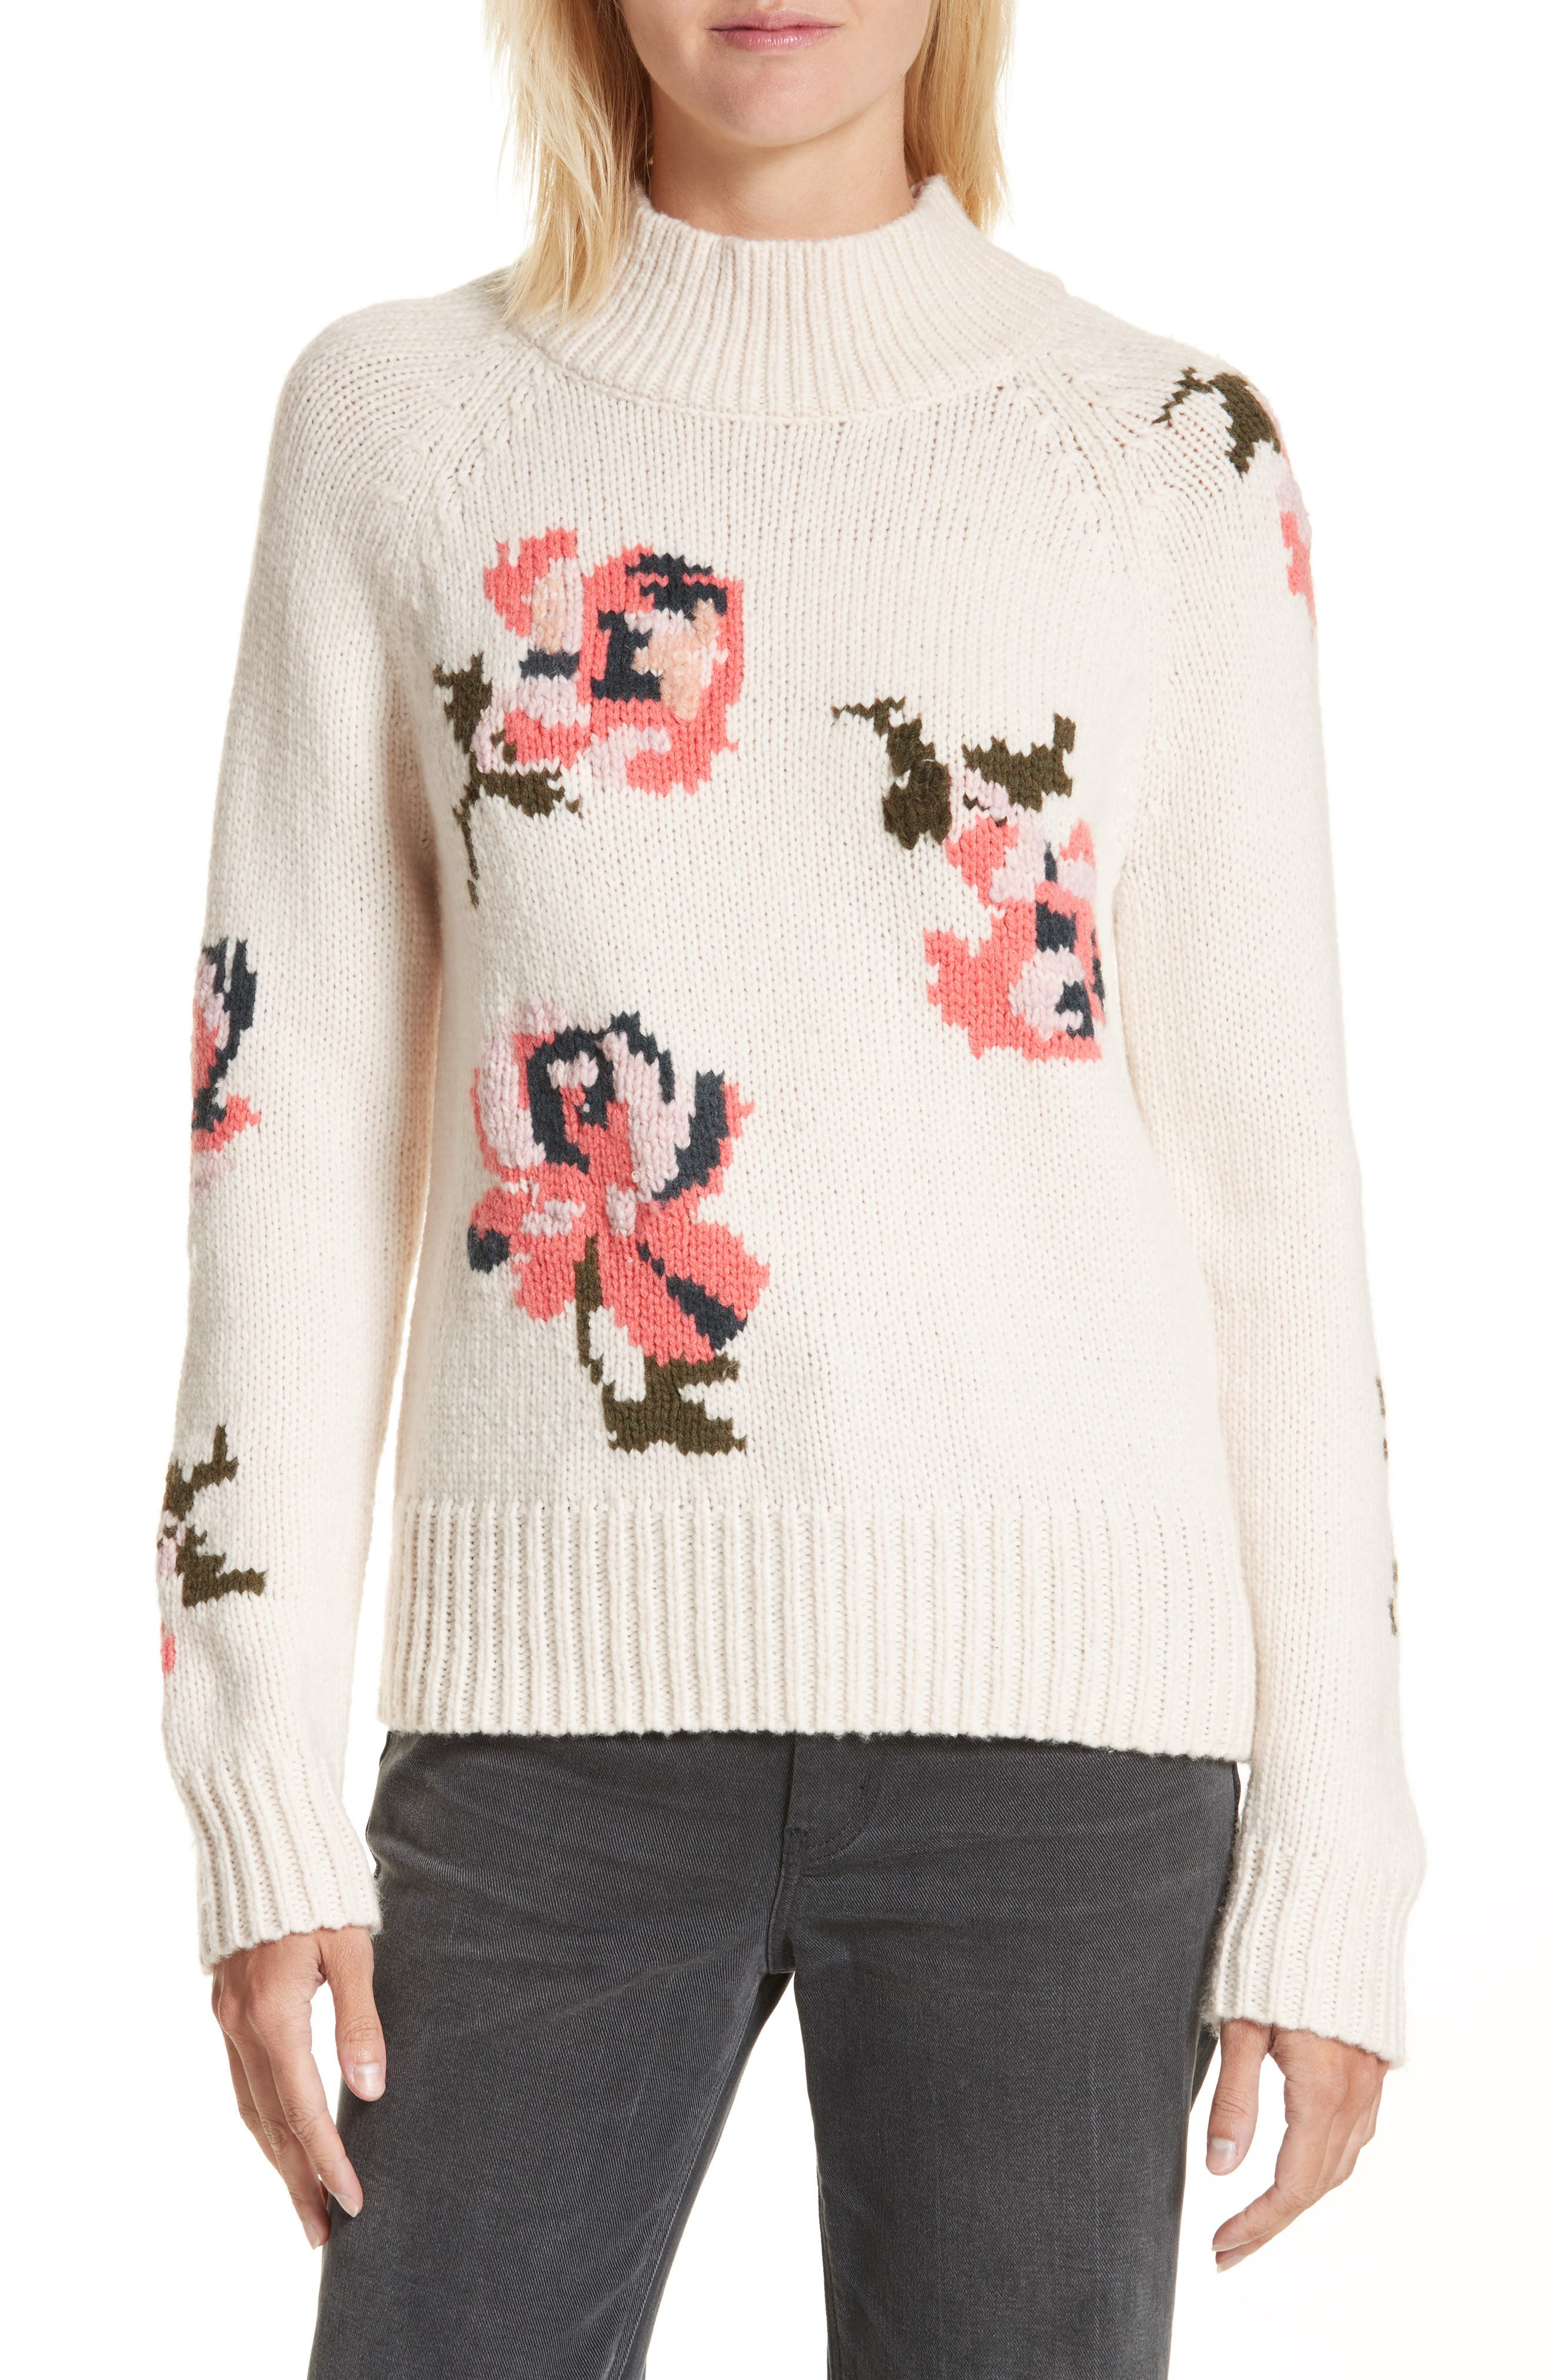 Rebecca Taylor Intarsia Floral Knit Sweater